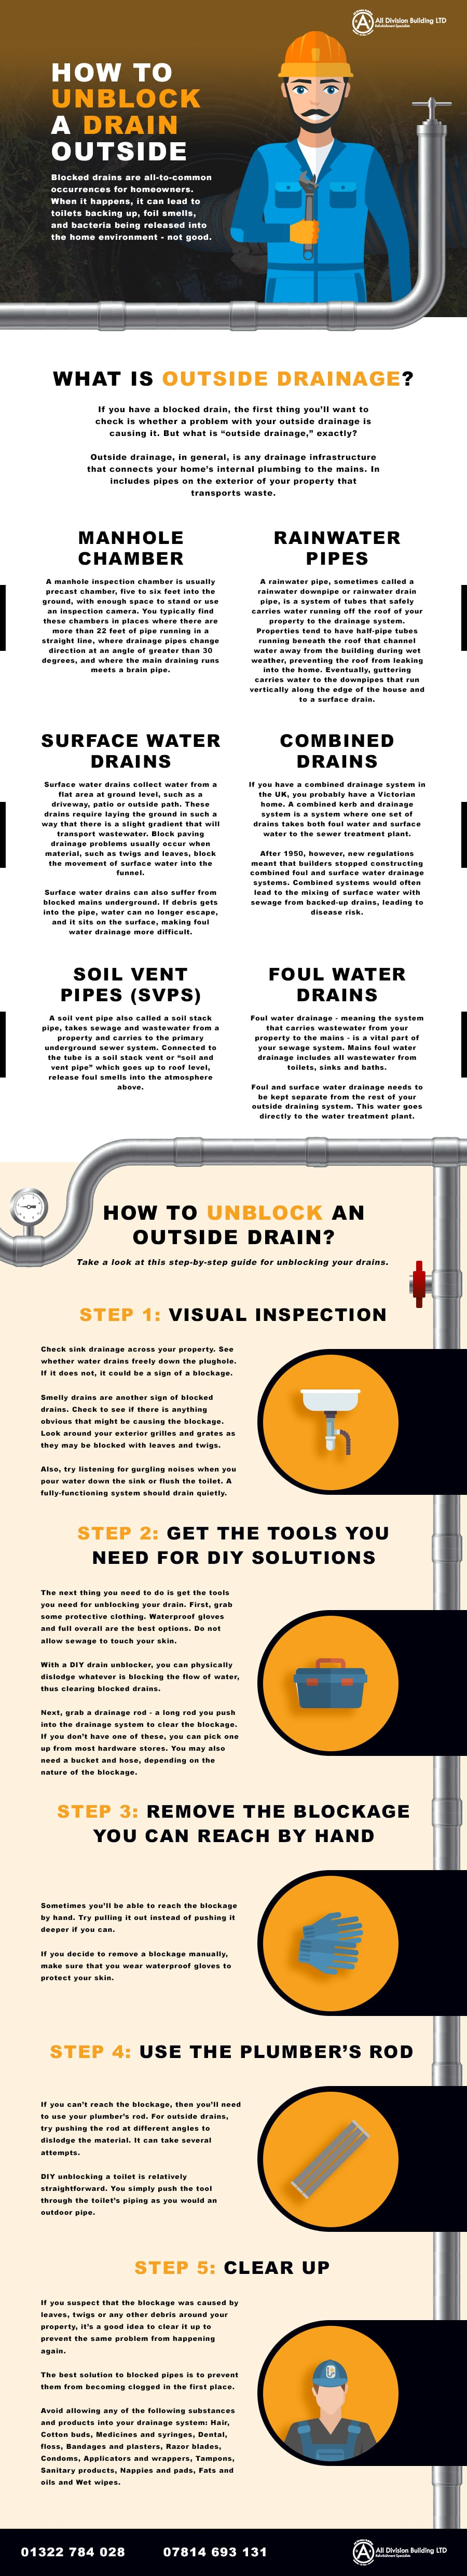 how to unblock outside drain infographic